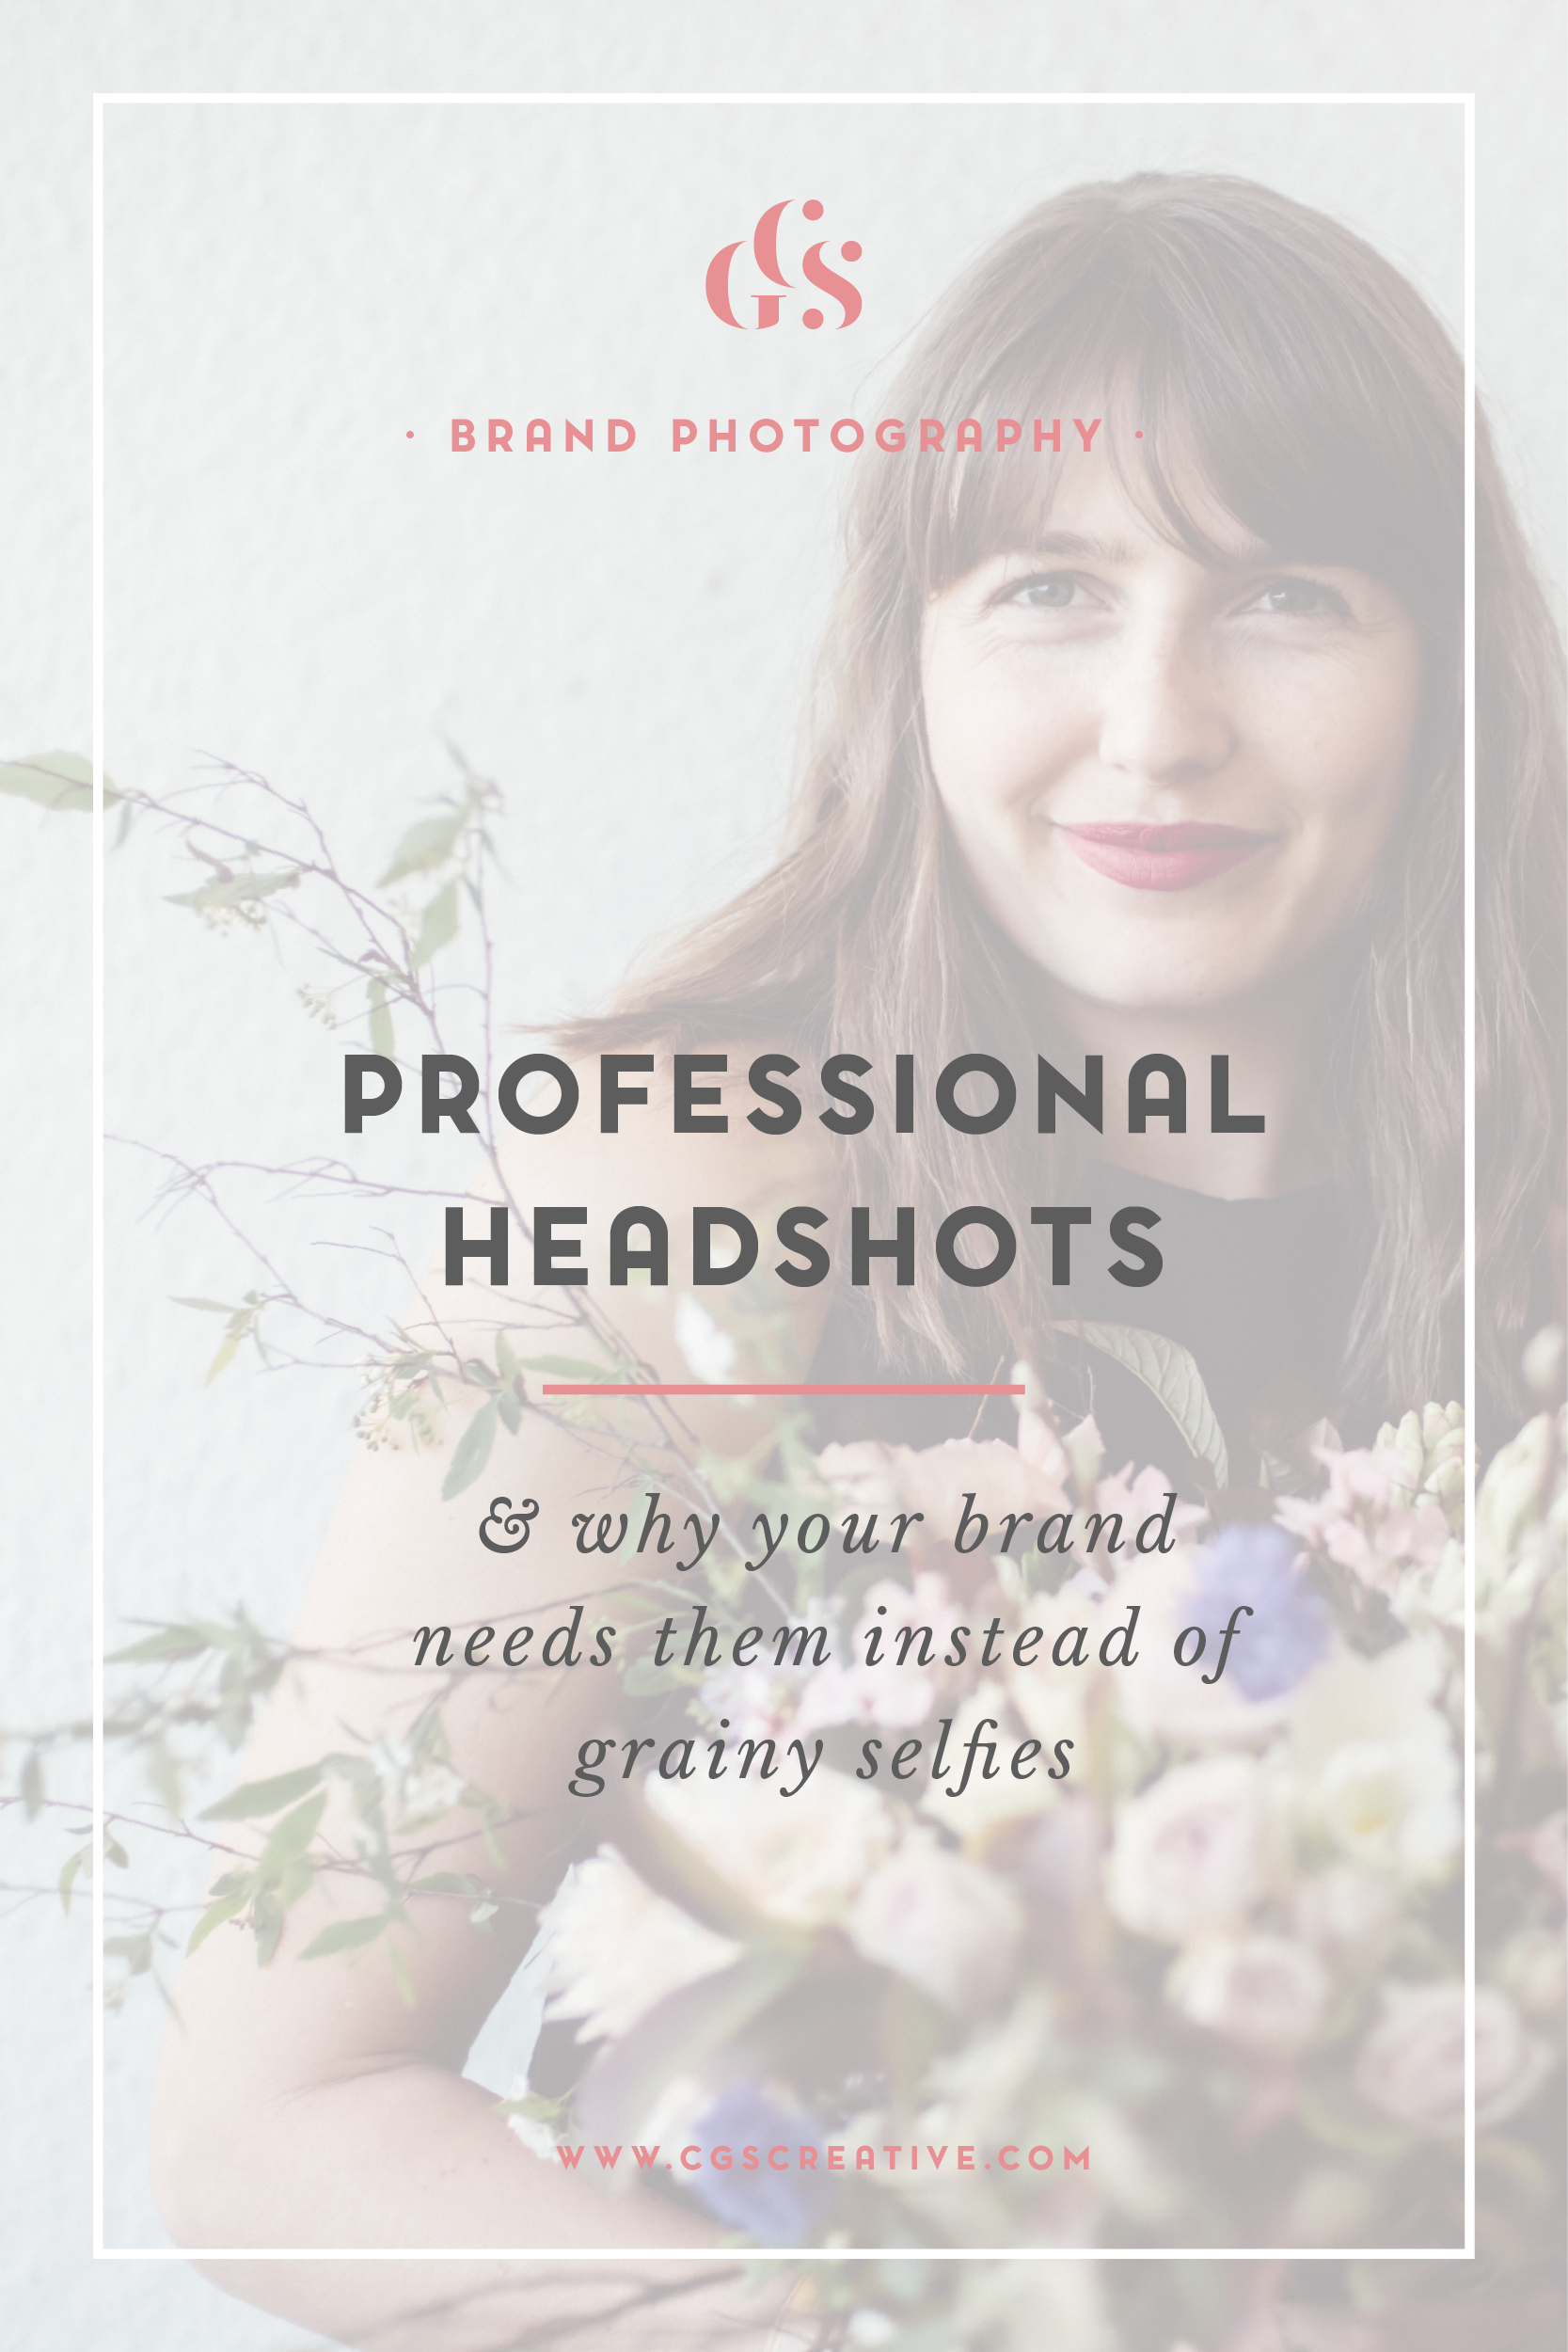 Brand Phography & Professional Headshots why your brand needs them instead of grainy selfies-01.png